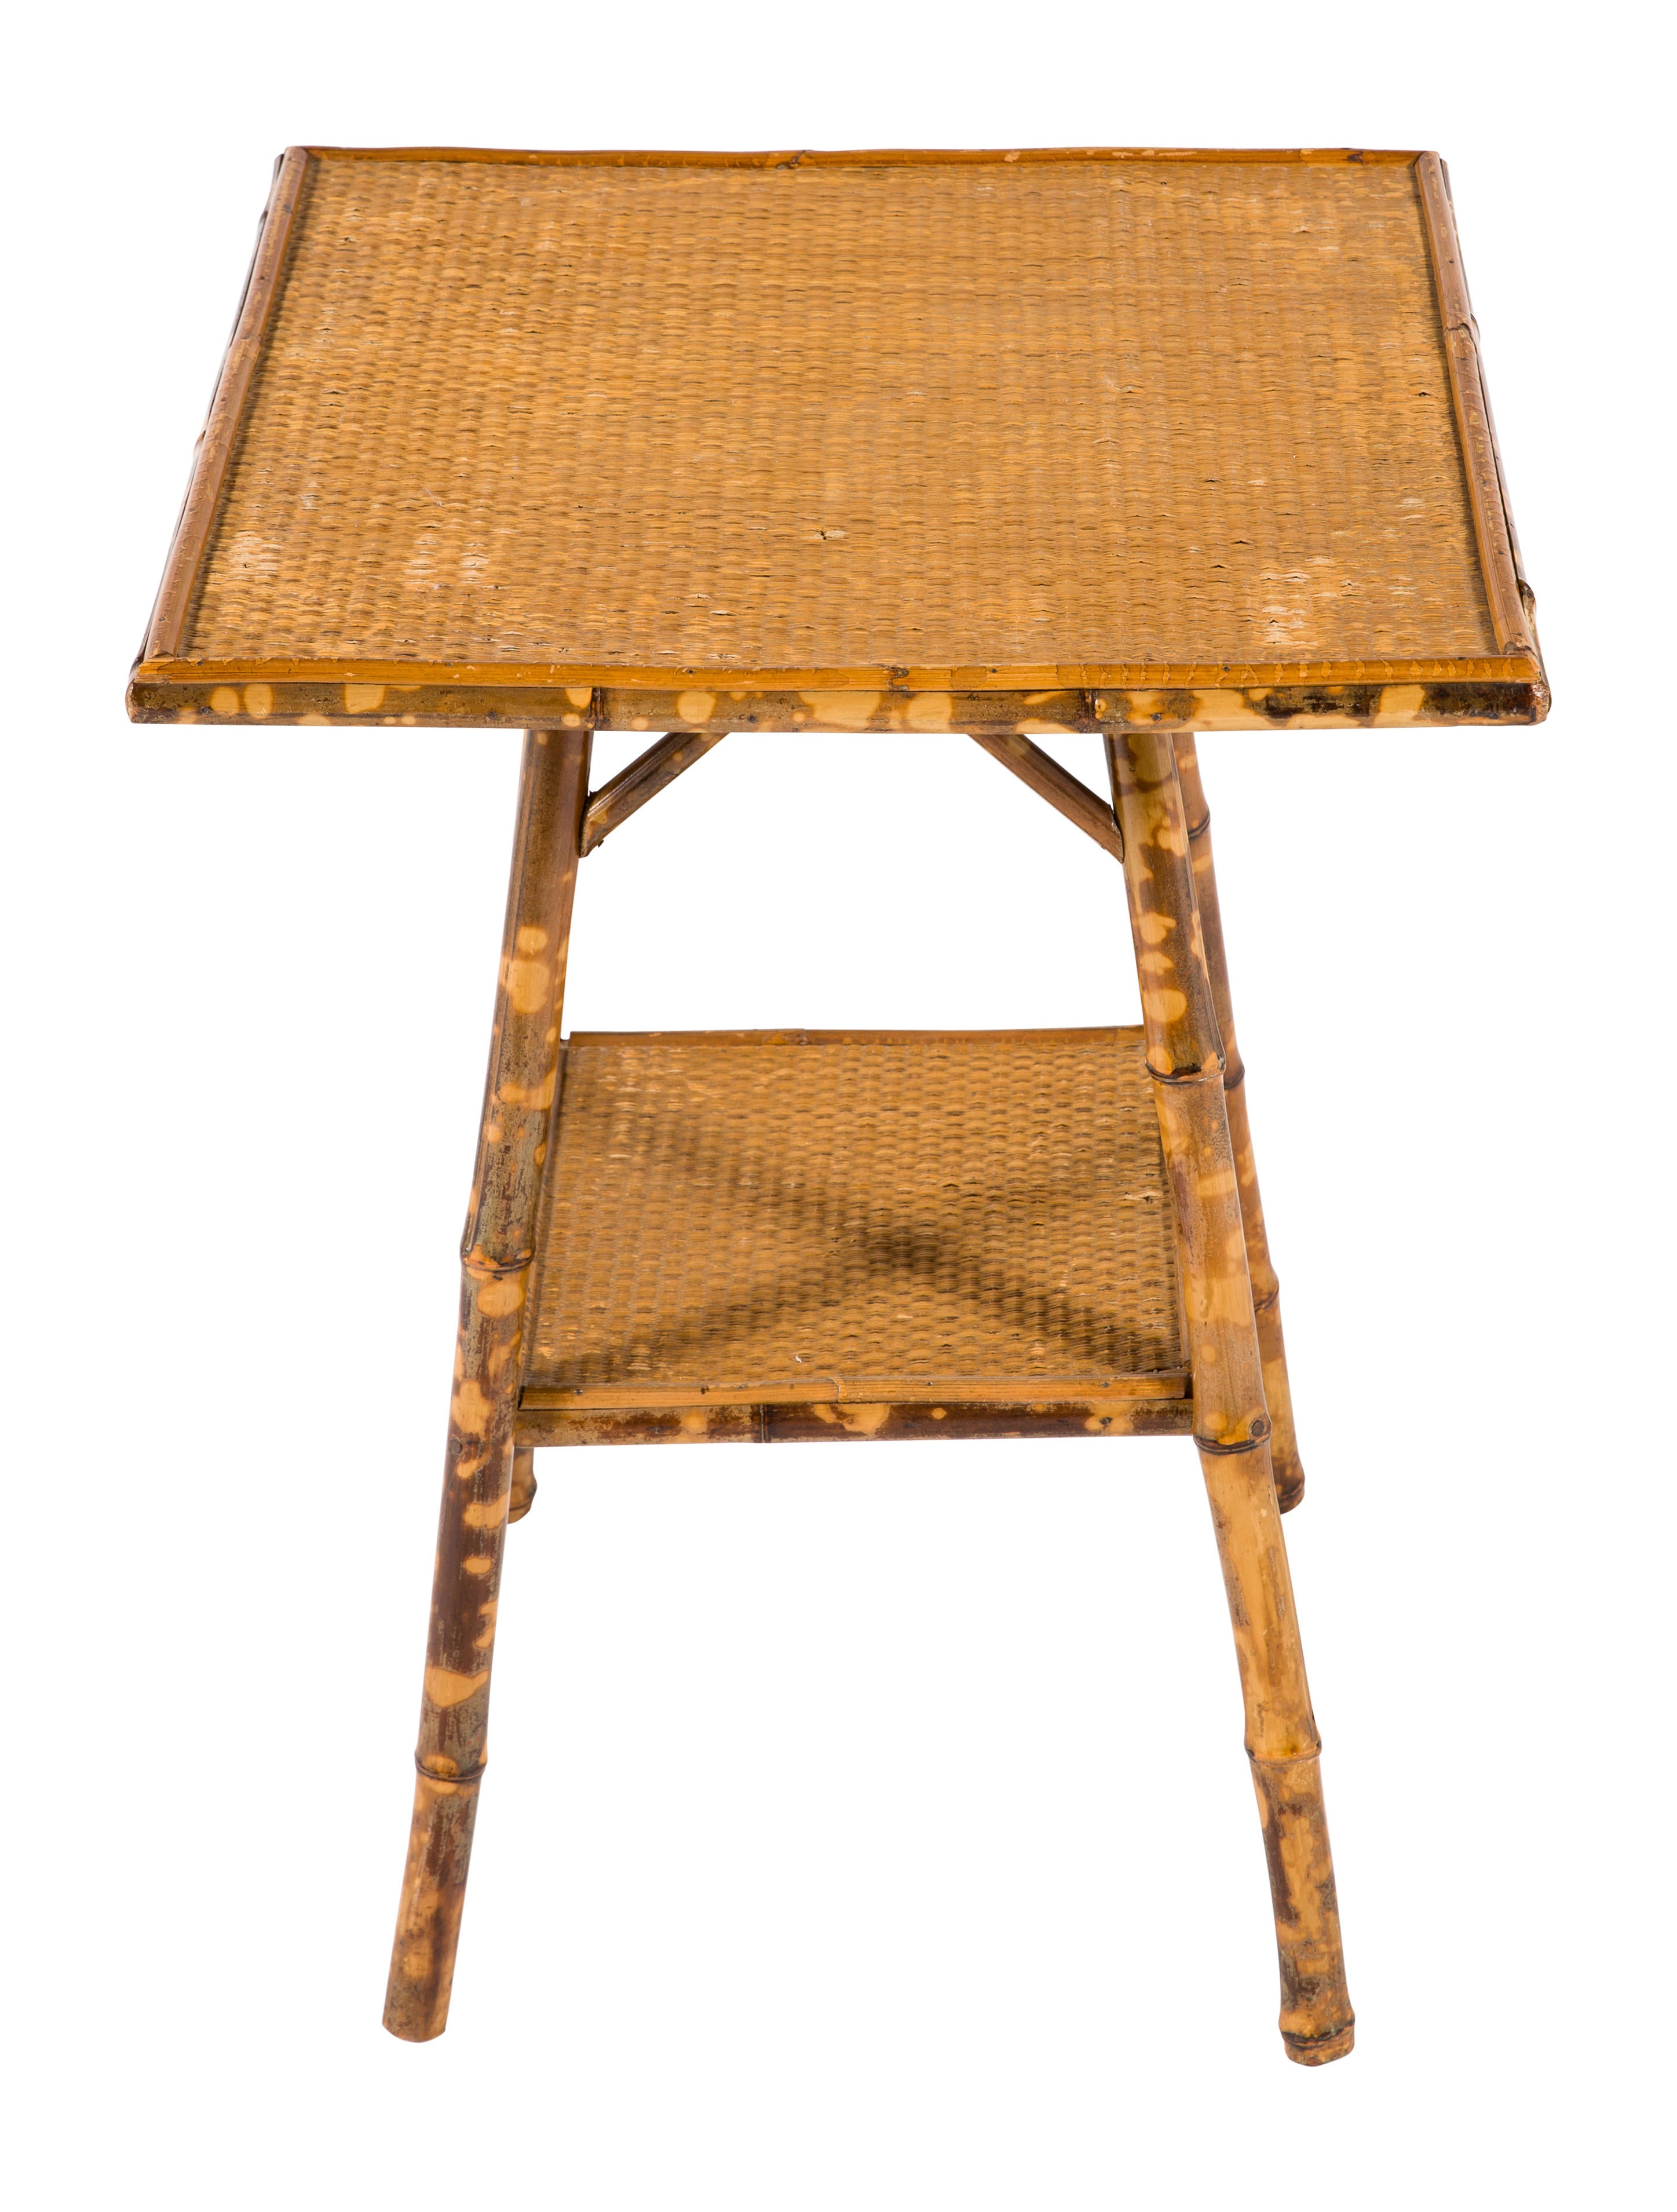 Bamboo cane accent table furniture table20417 the realreal - Essential accent furniture for your home ...